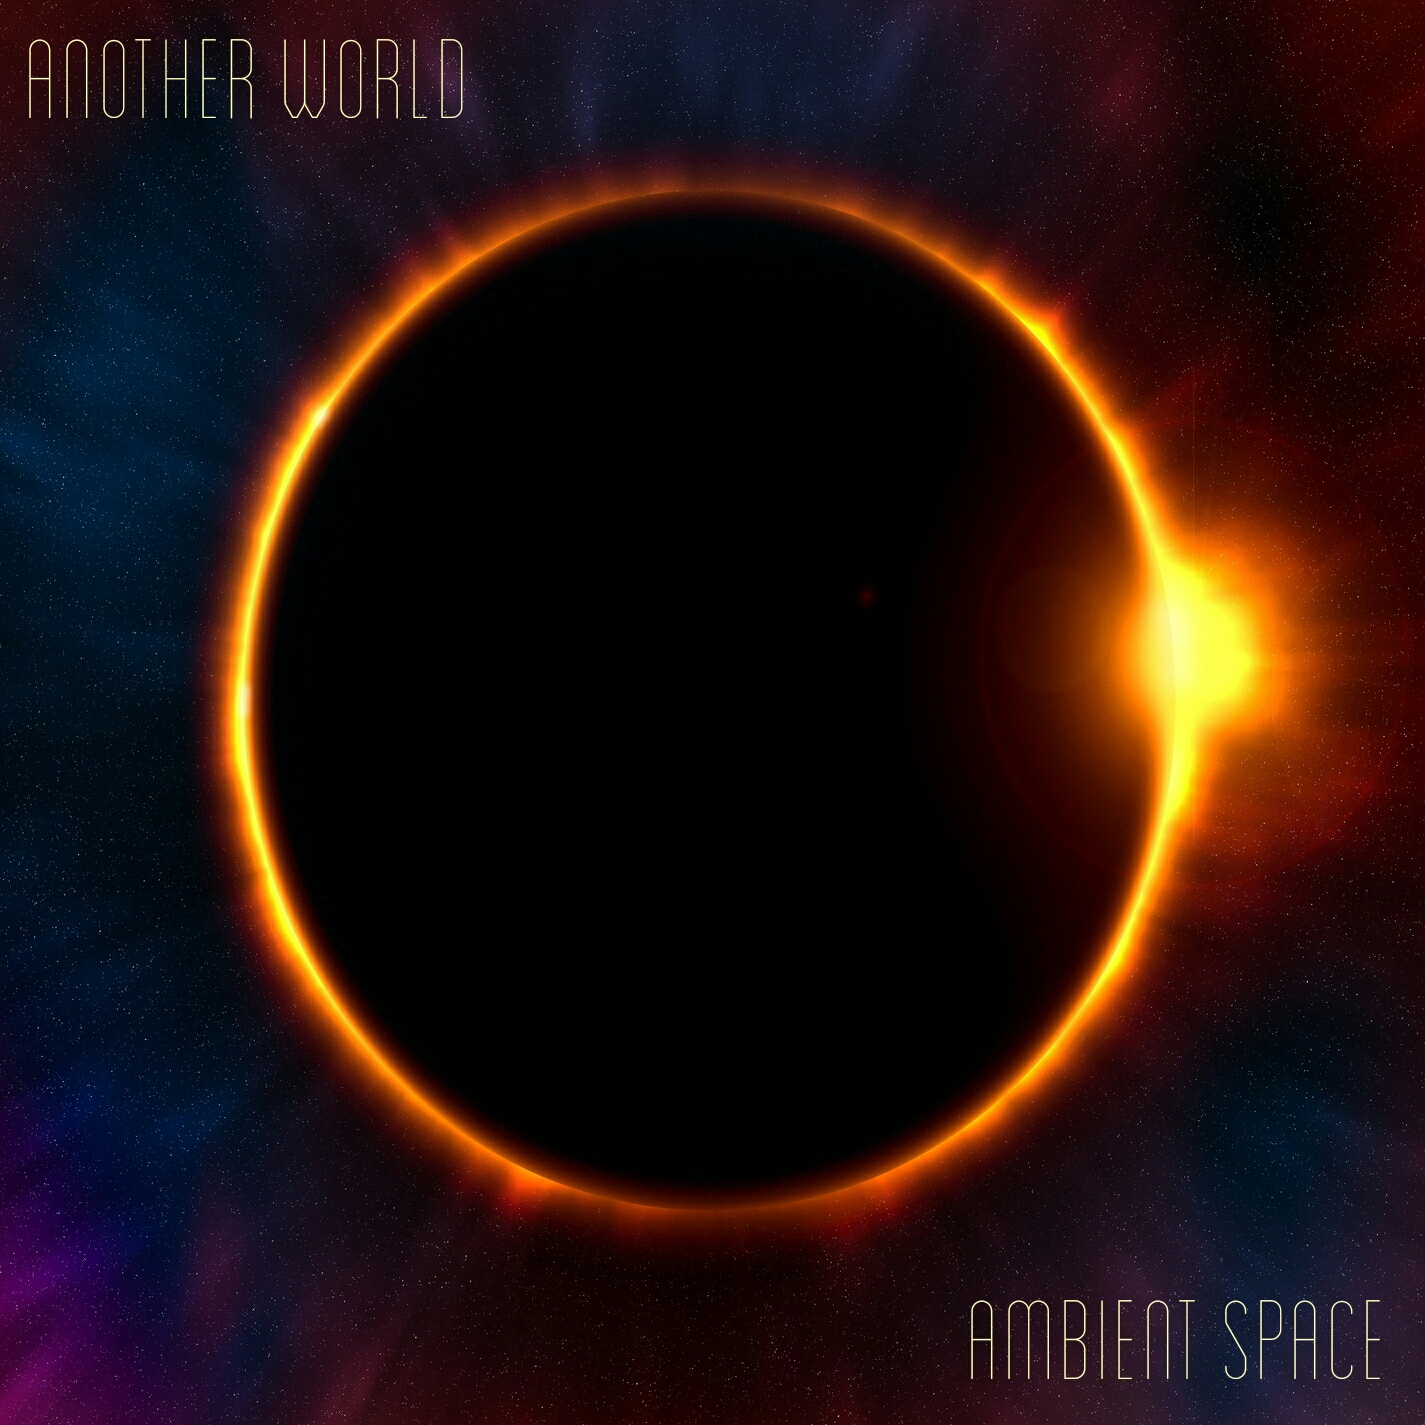 Another World - Ambient Space Mp3 Music Download | Music2relax com